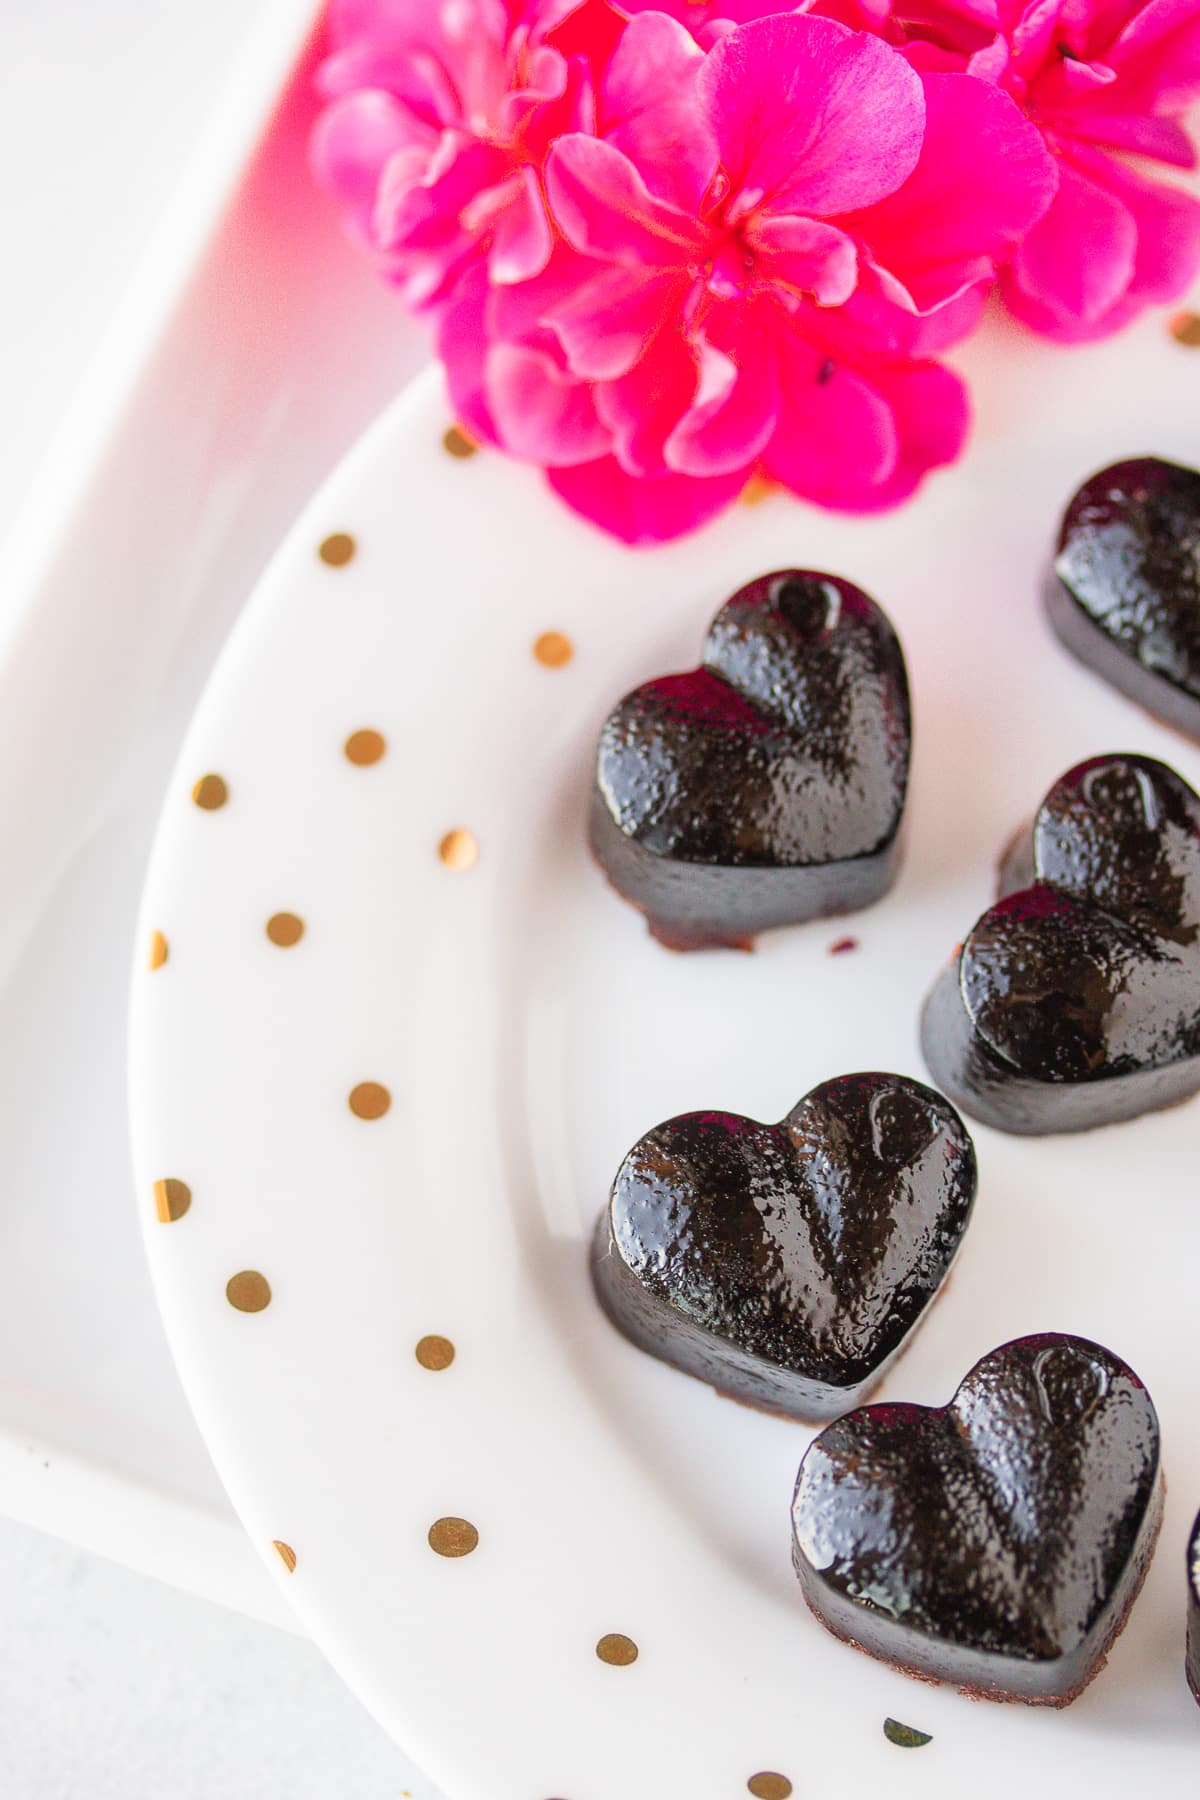 cbd heart gummies on a plate with fresh flowers